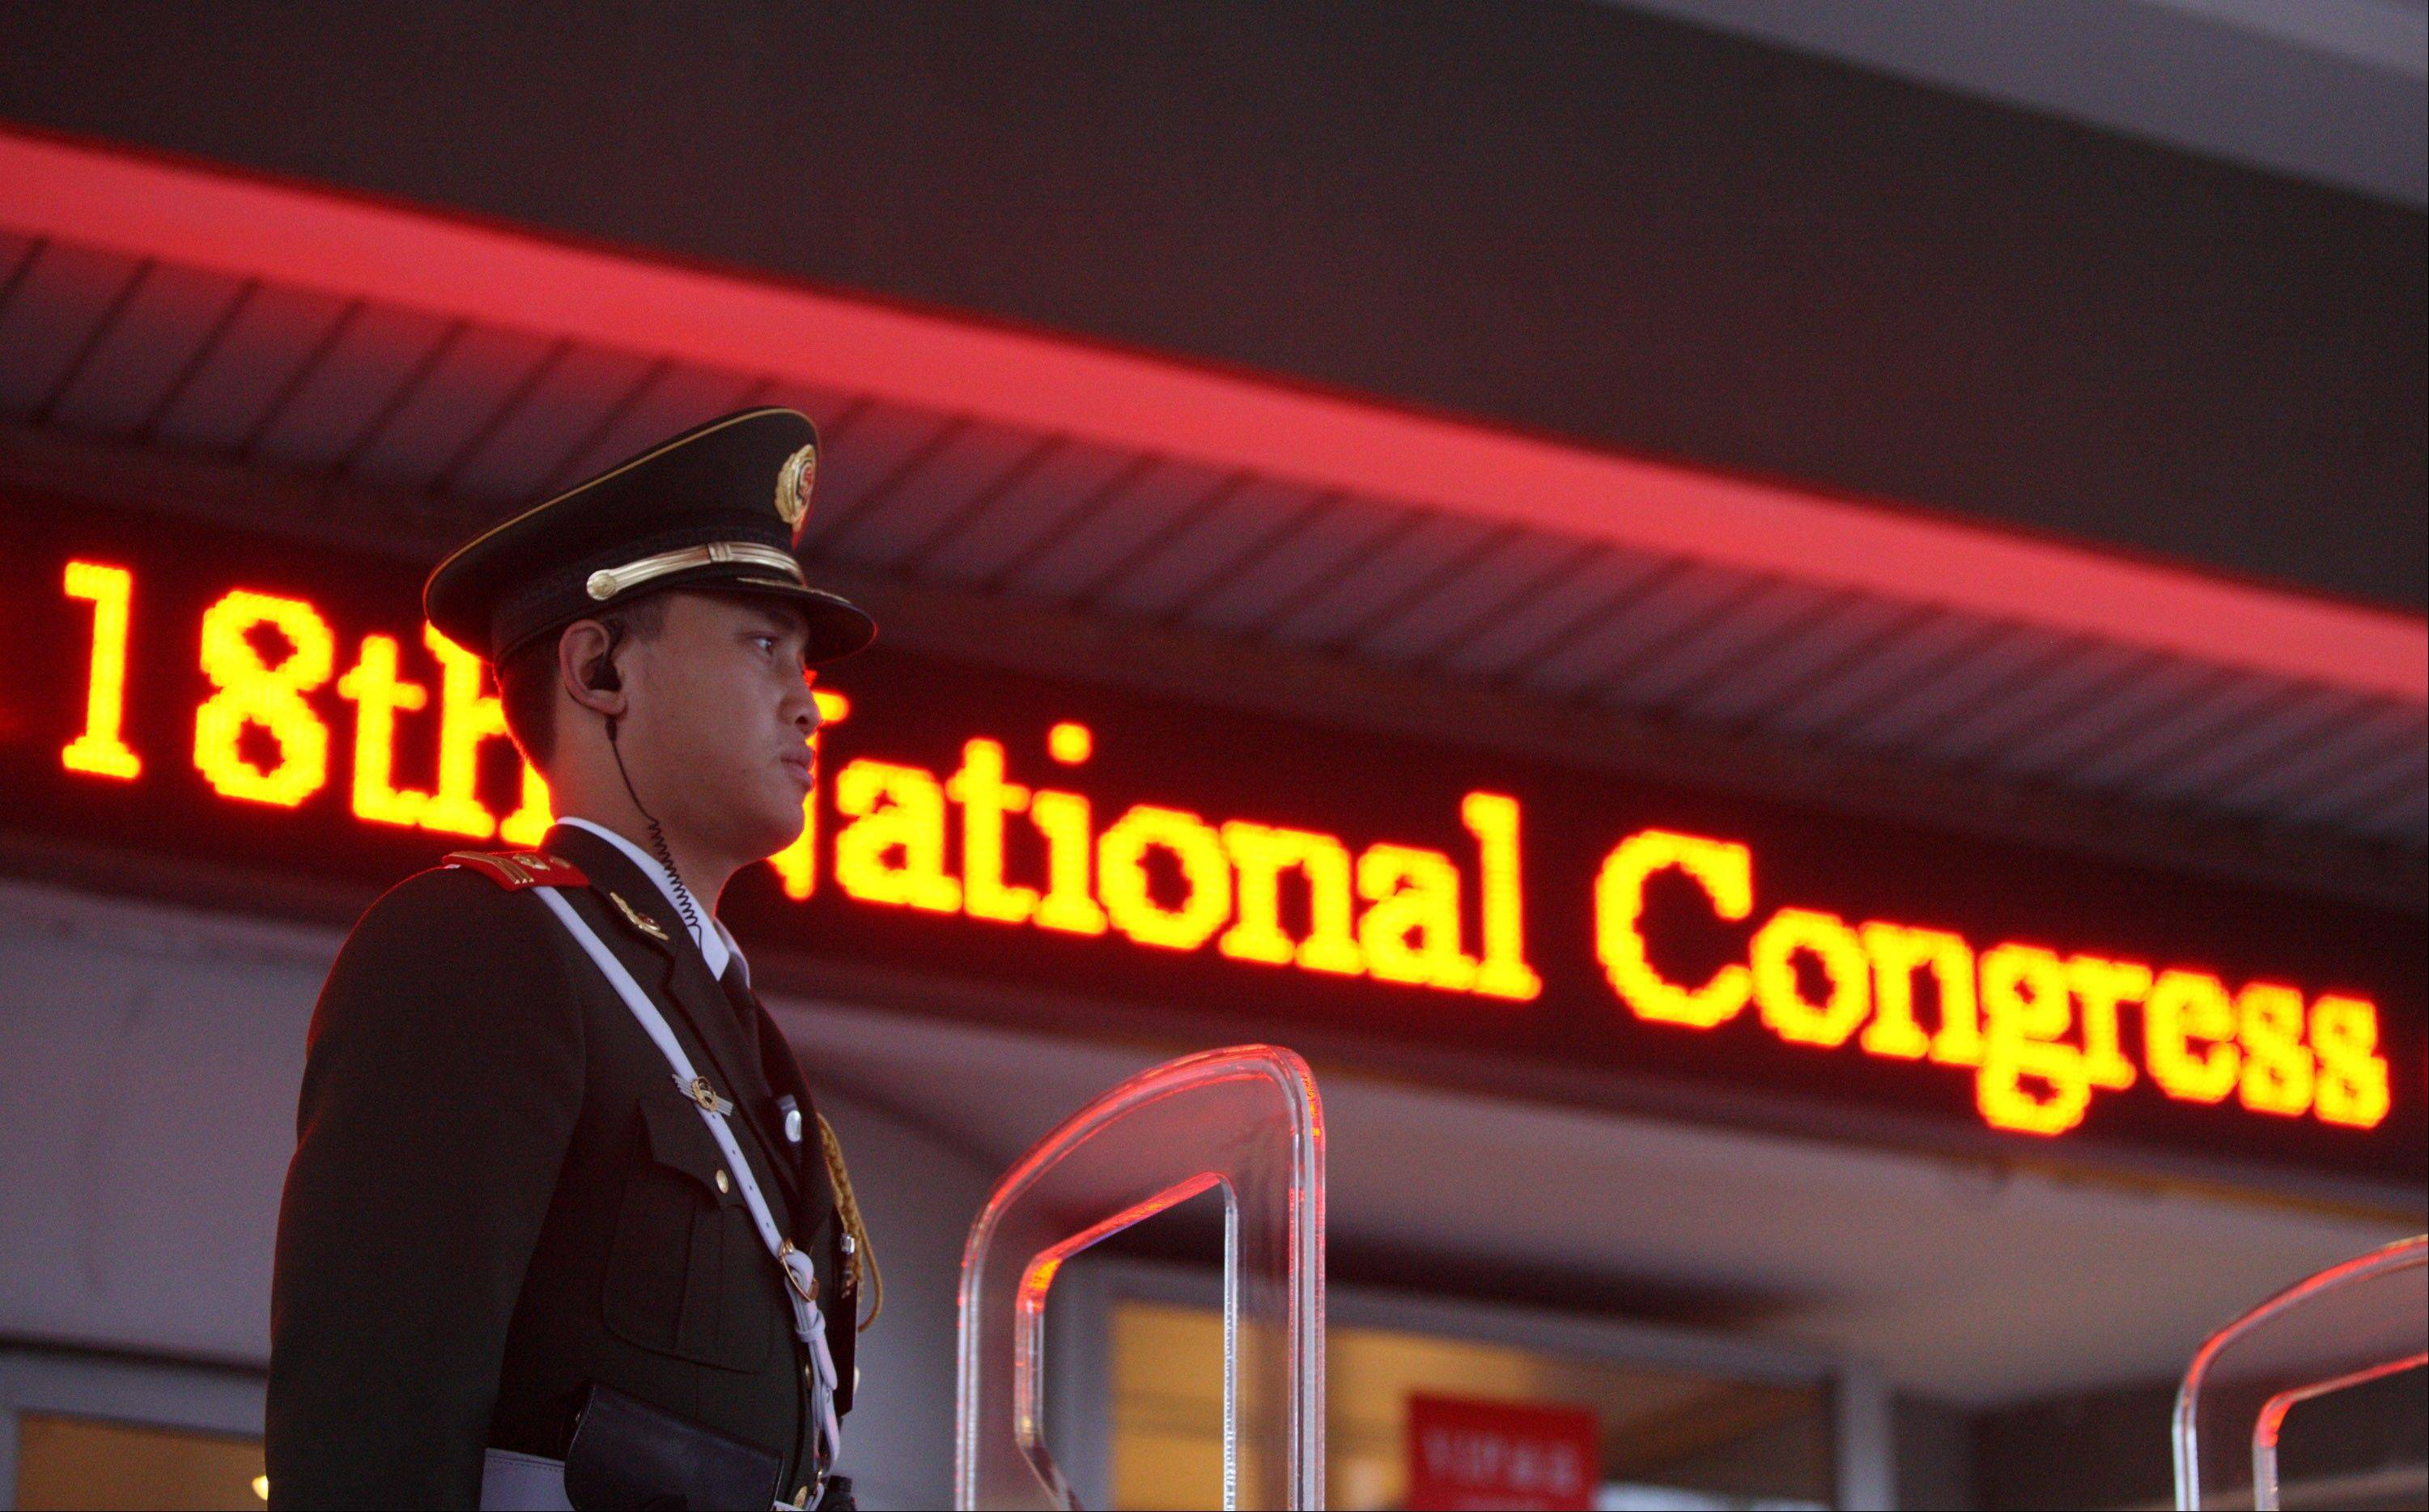 A security guard stands outside the media center for the 18th National Congress of the Communist Party of China in Beijing, China, on Wednesday, Nov. 7, 2012. China's Vice President Xi Jinping was appointed the secretary general of the 18th Chinese Communist Party Congress, spokesman Cai Mingzhao said at a briefing today.